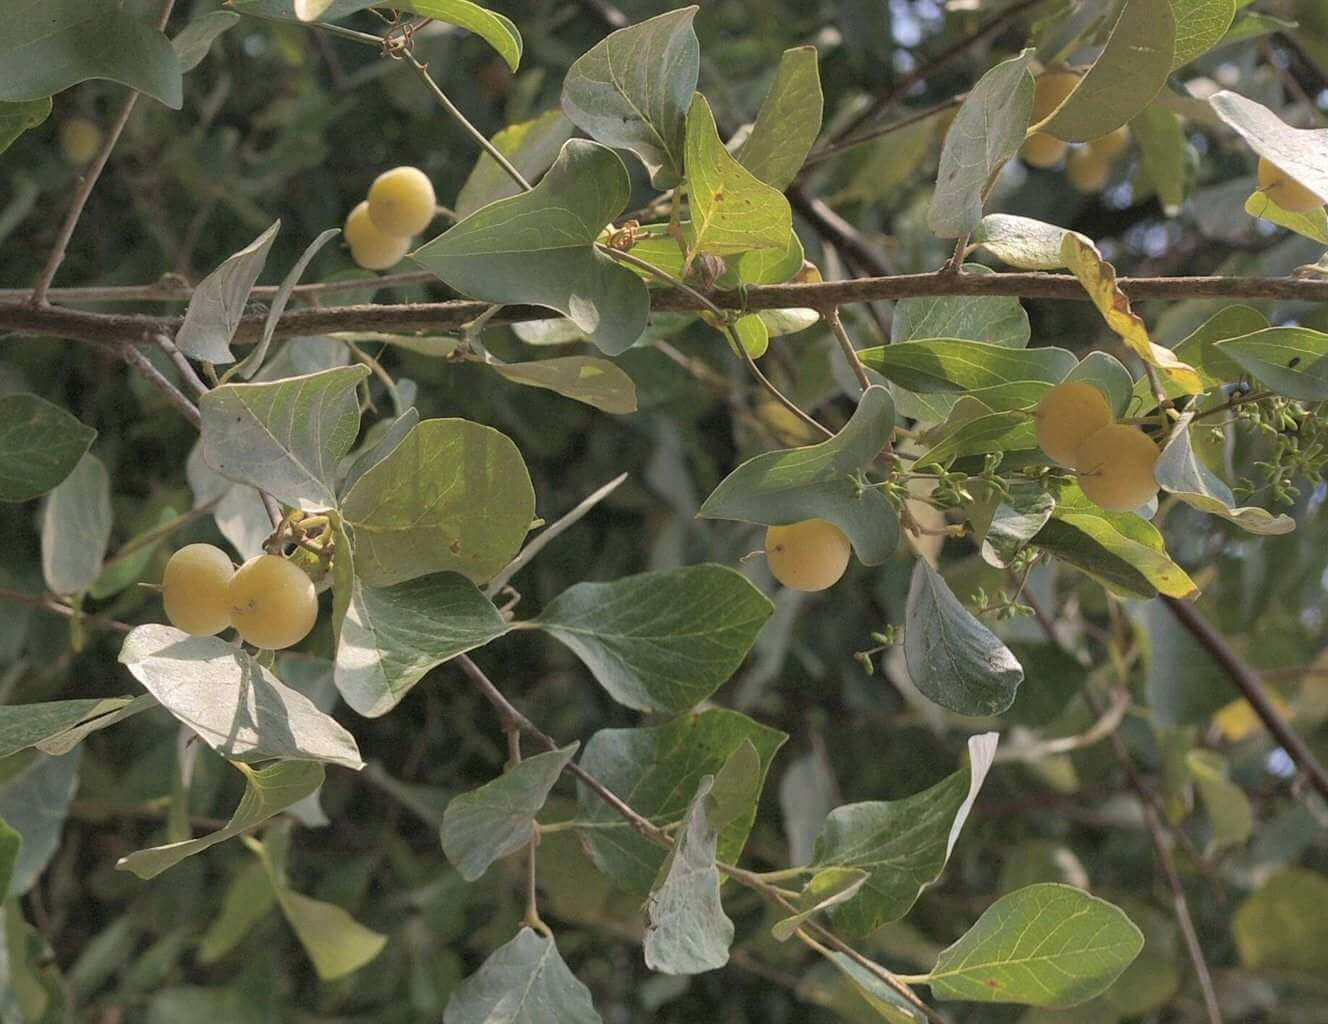 Styrax officinalis – stacte in the Bible